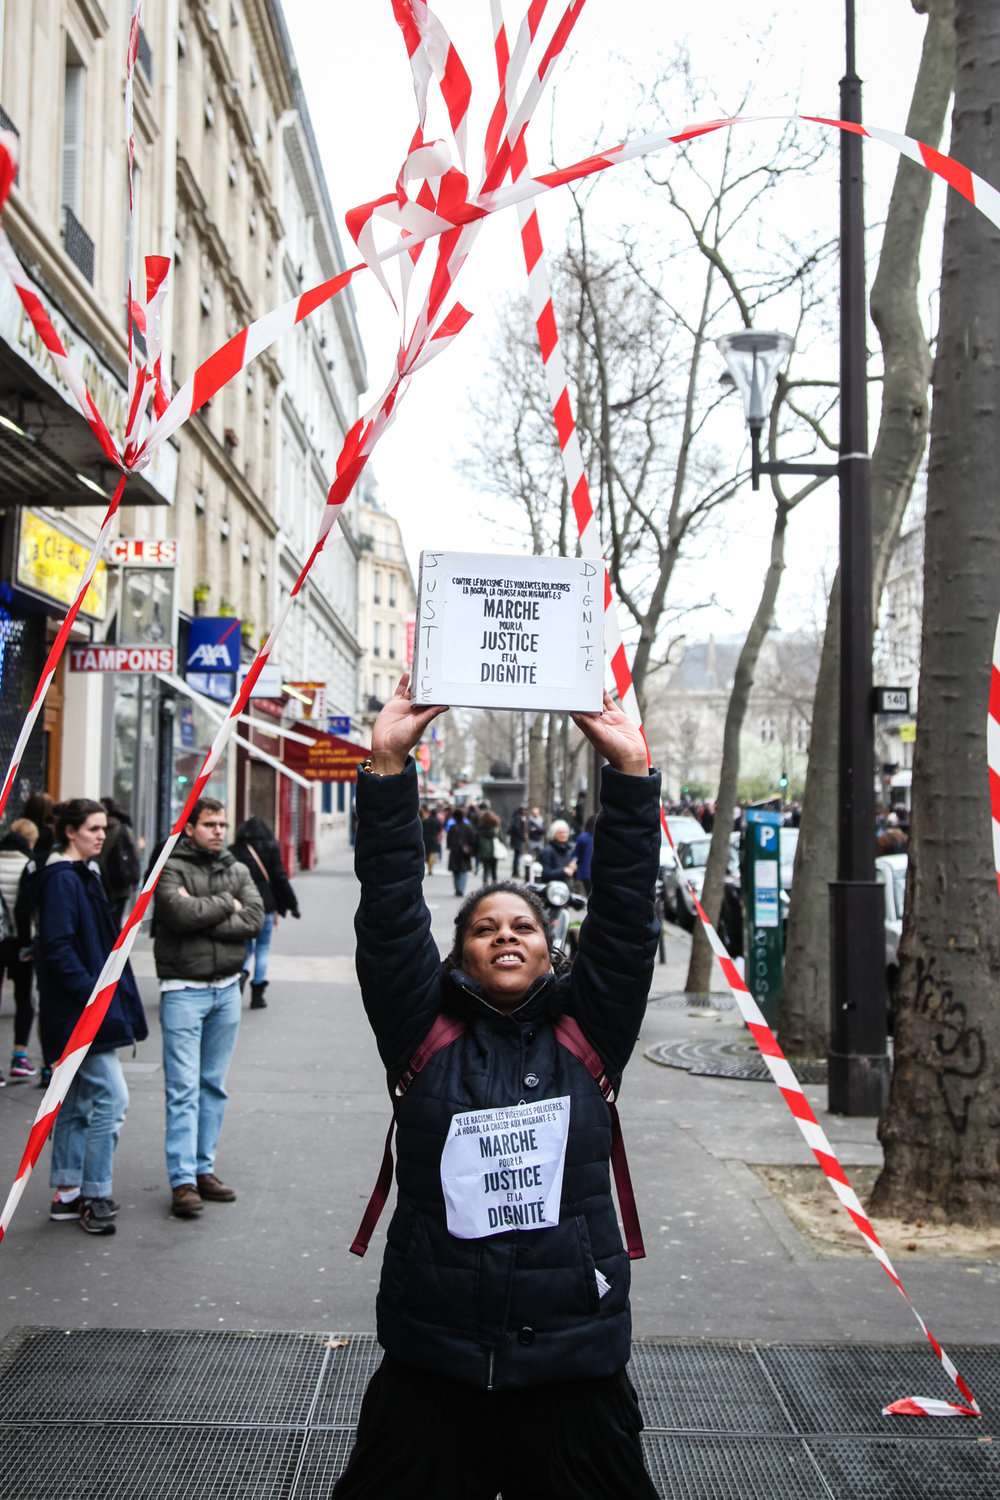 07-201703-MARCHE-CONTRE-VIOLENCES-POLICIERES©Augustin-Le_Gall-Haytham-Pictures-IMG_3740.jpg